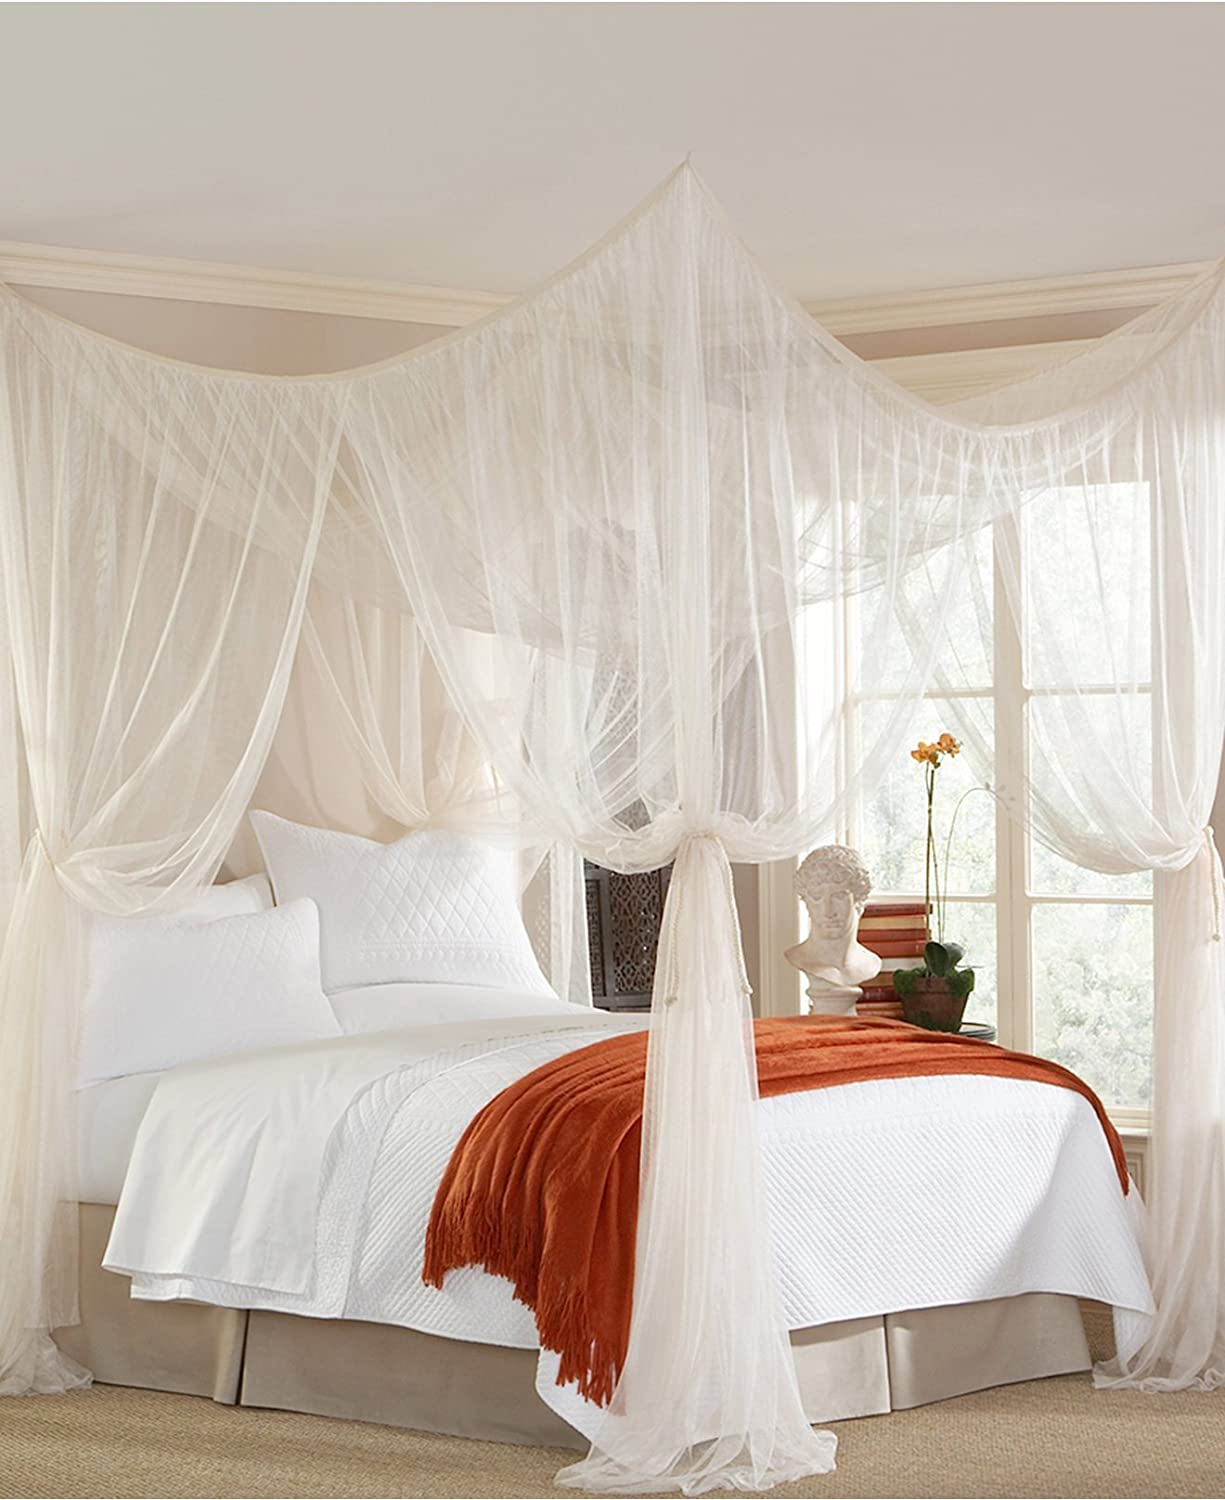 Mombasa Majesty Classic Bed Netting/Canopy, White (76-in W x 84-in L x  96-in H)